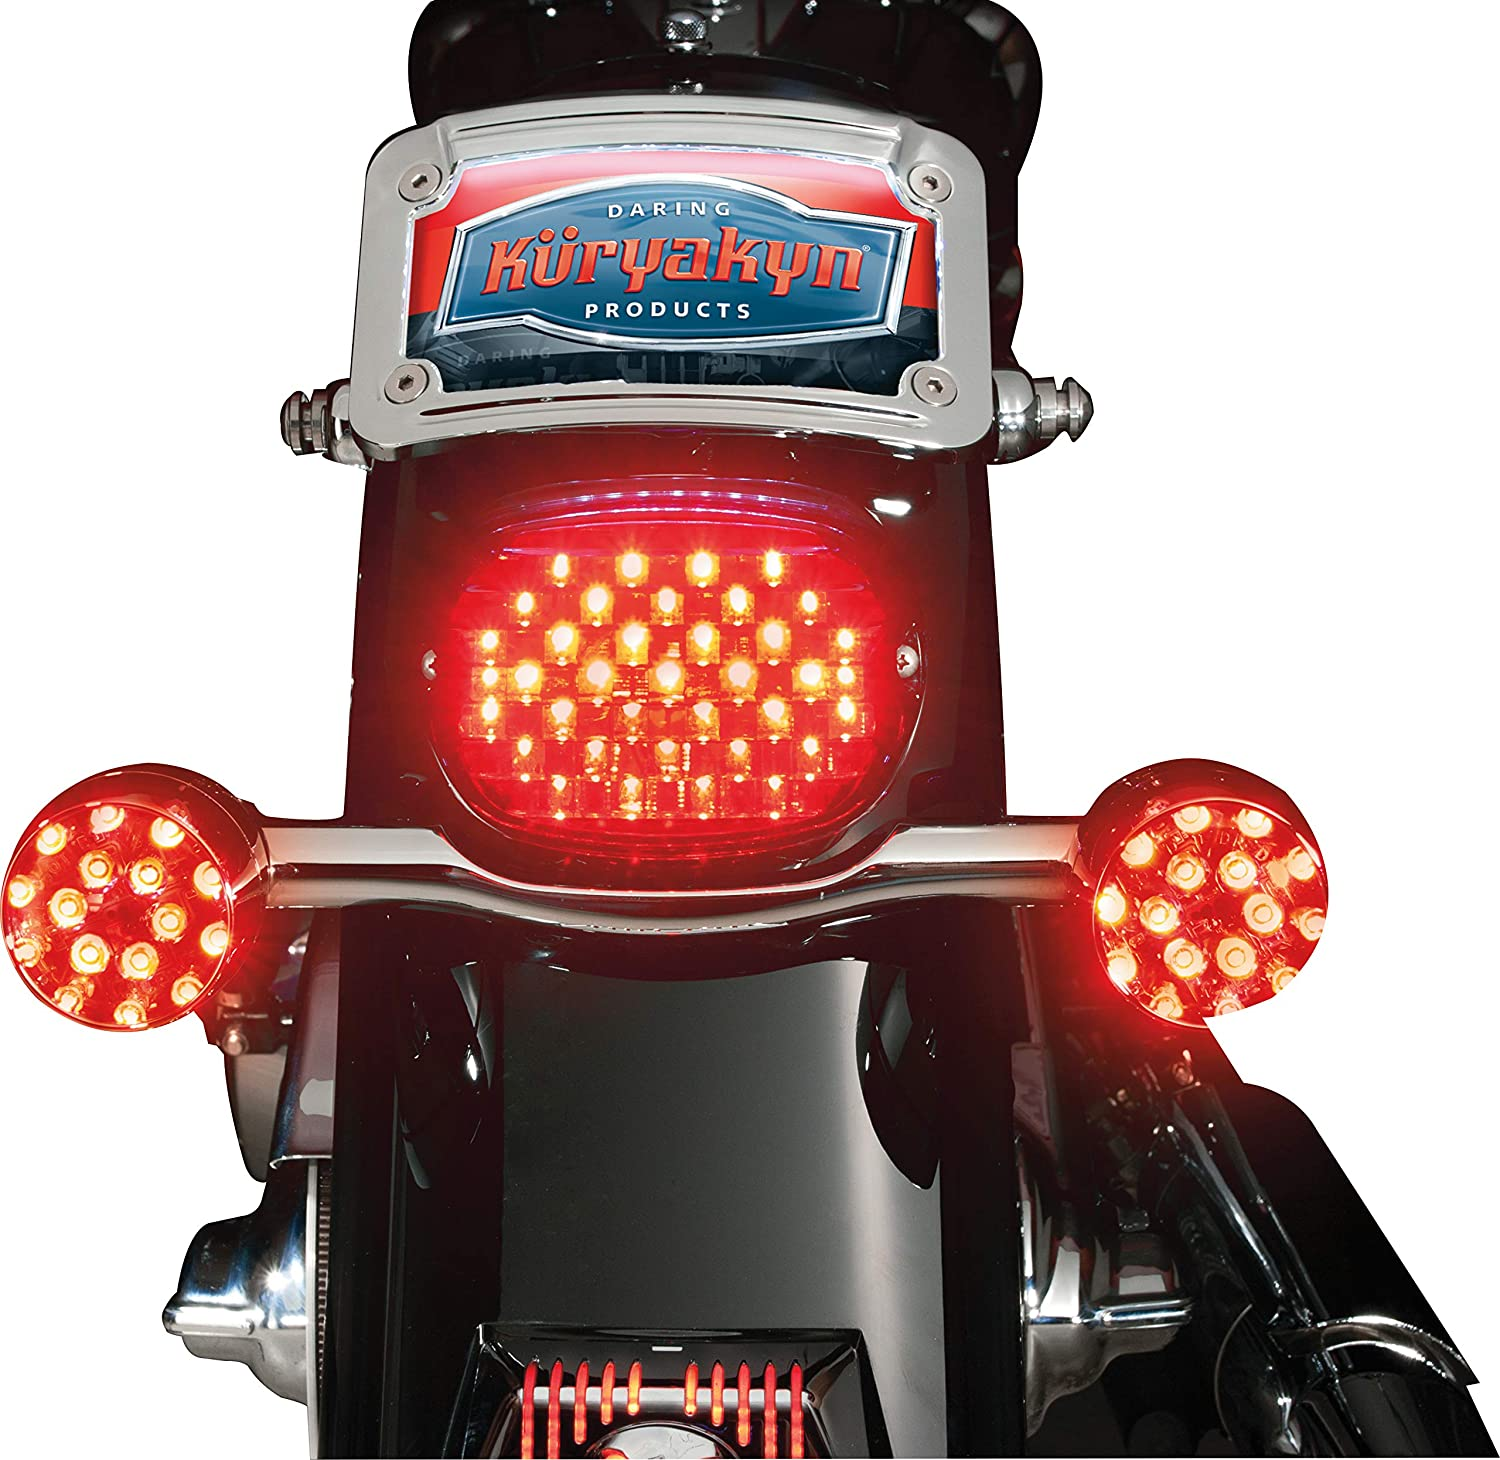 Red Lens Low Profile LED Taillight Conversion Kit without License Plate Illumination Light for 2005-19 Harley-Davidson Motorcycles Kuryakyn 5437 Motorcycle Lighting